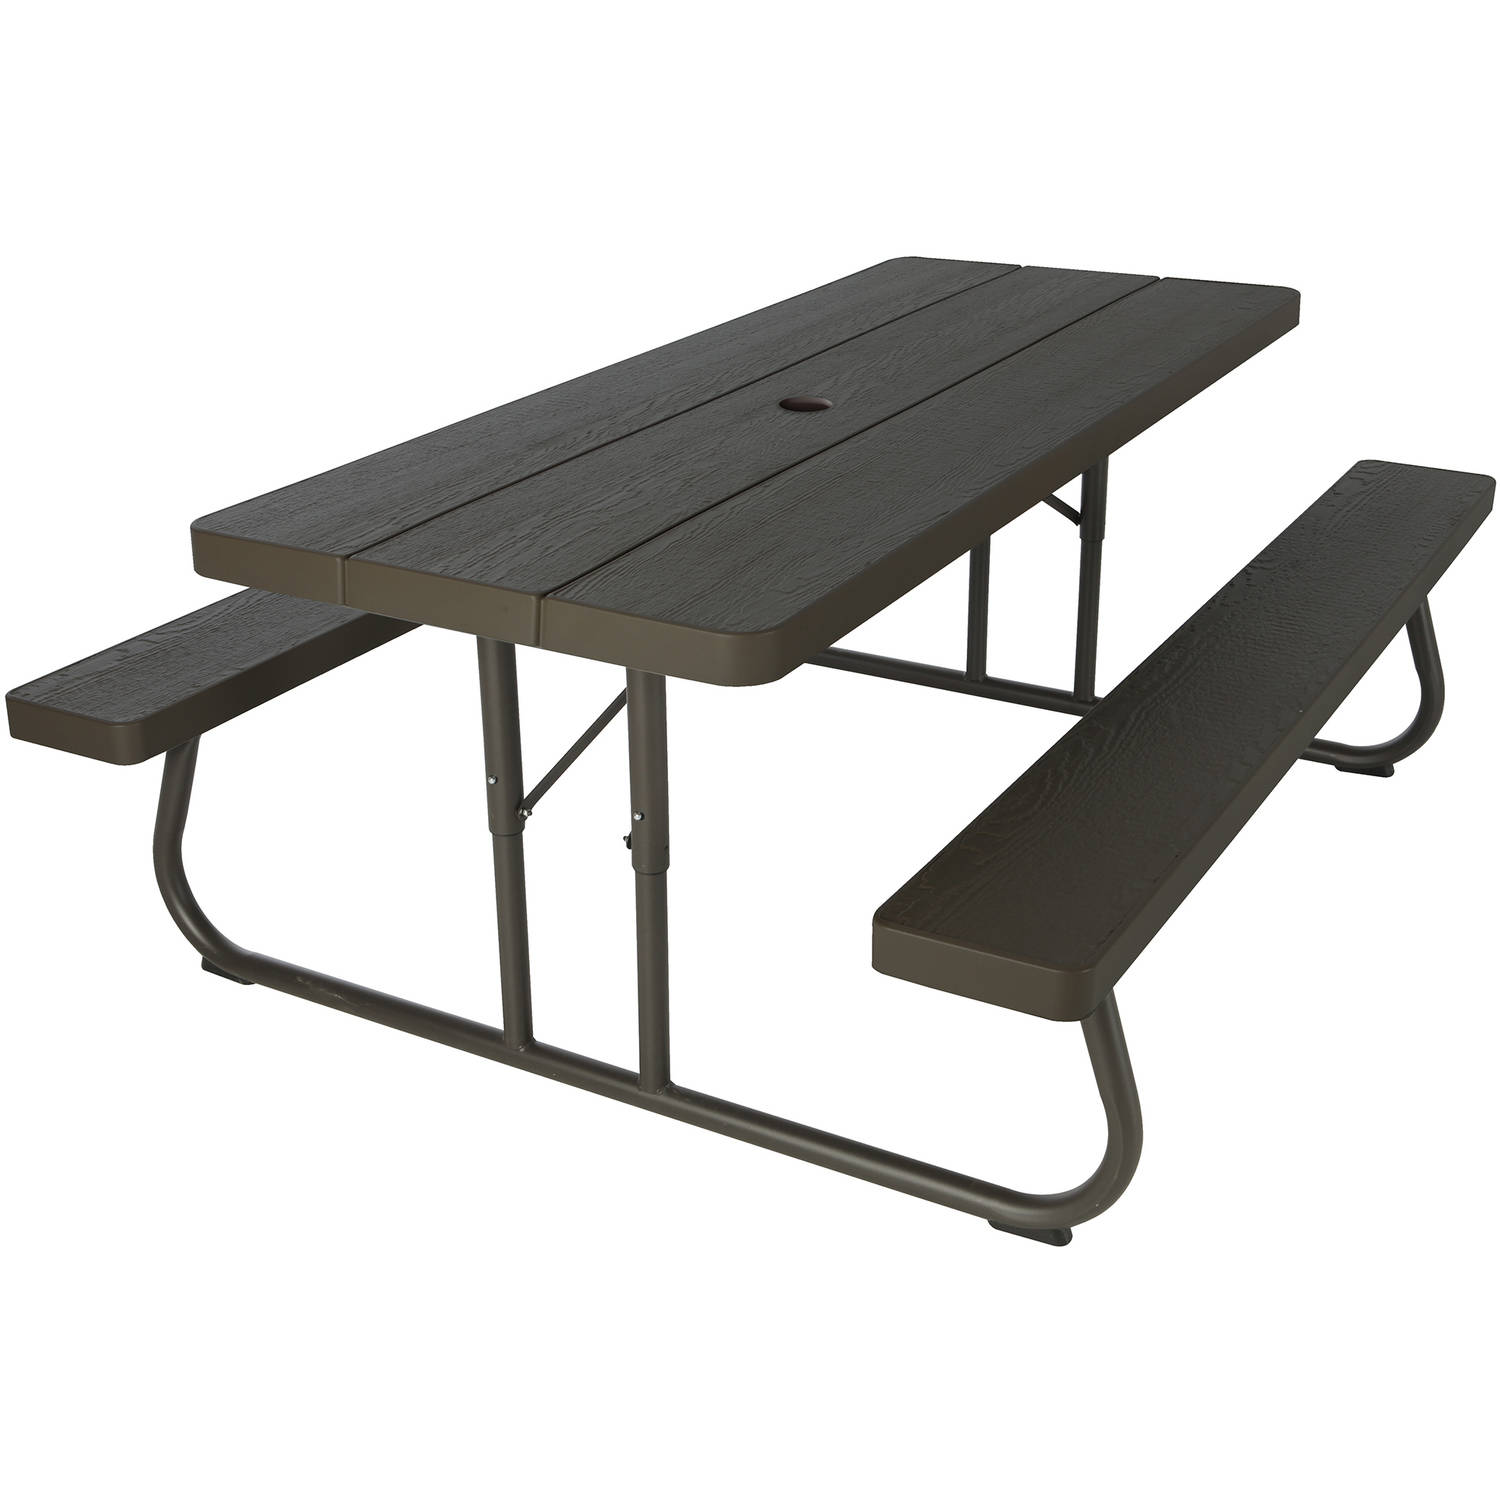 Lifetime 6' Picnic Table, Brown